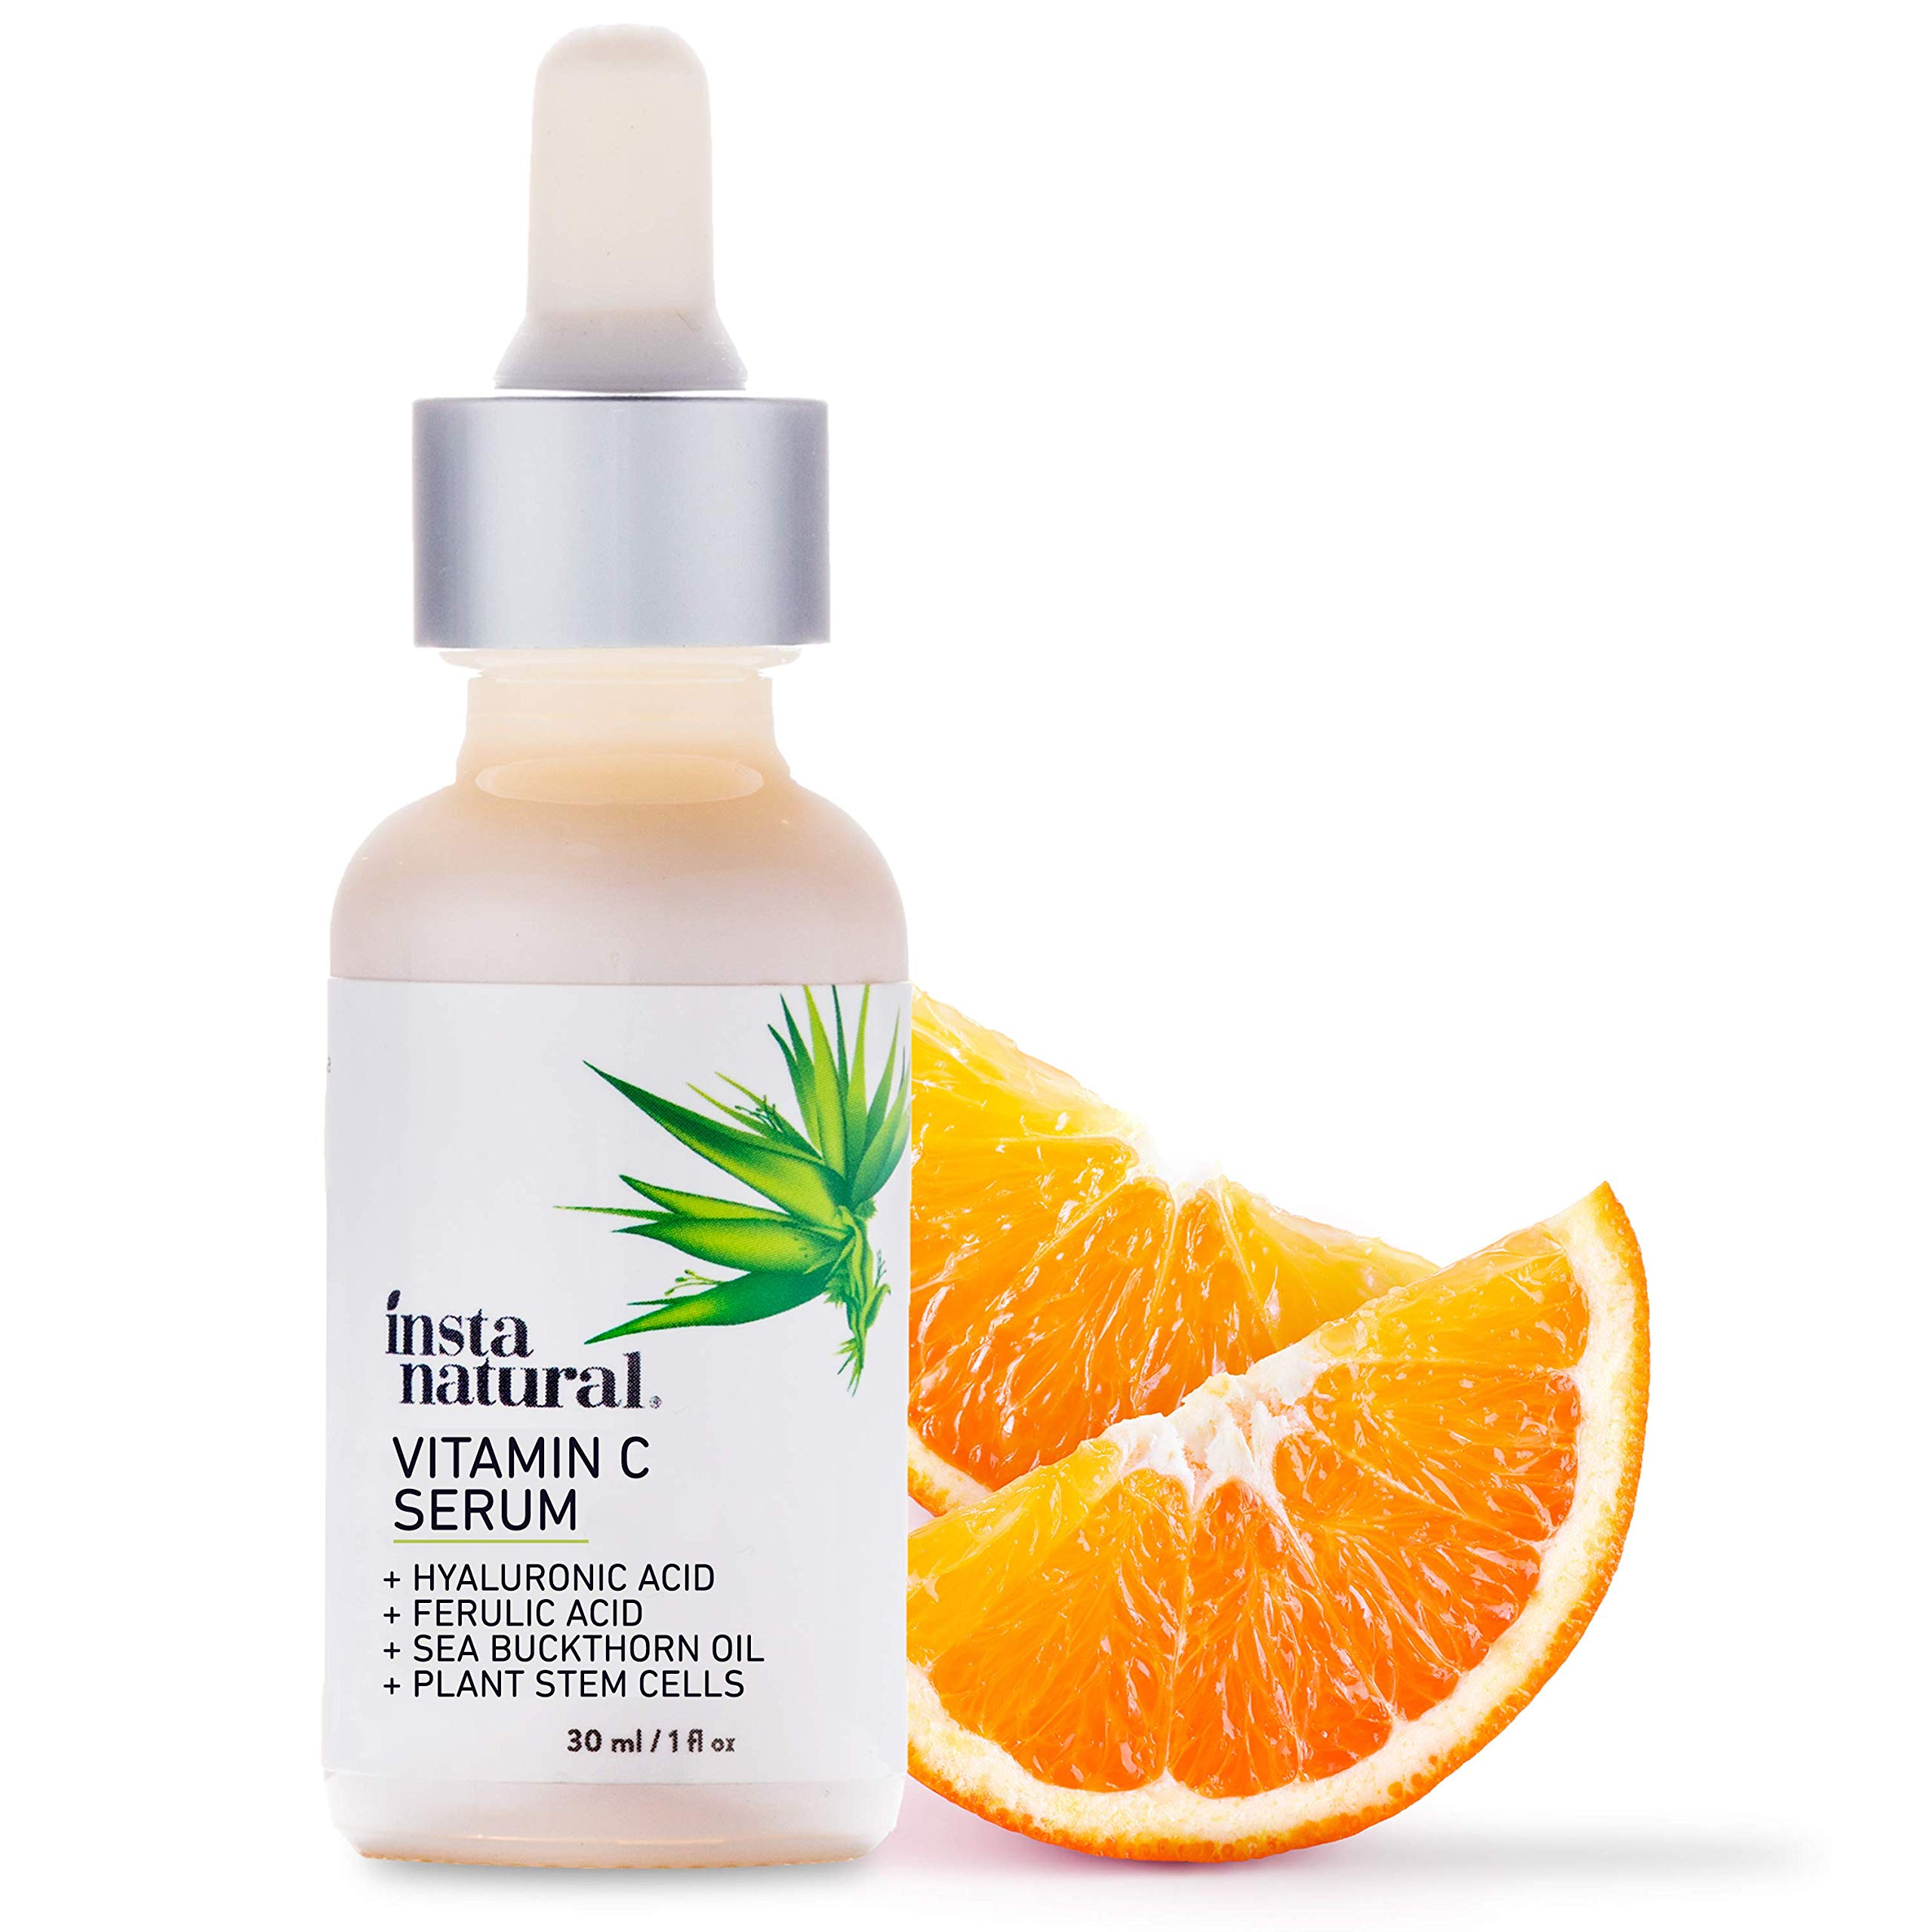 InstaNatural Vitamin C Serum with Hyaluronic Acid & Vit E - Natural & Organic Anti Wrinkle Reducer Formula for Face - Dark Circle, Fine Line & Sun Damage Corrector - Restore & Boost Collagen - 1 oz by InstaNatural